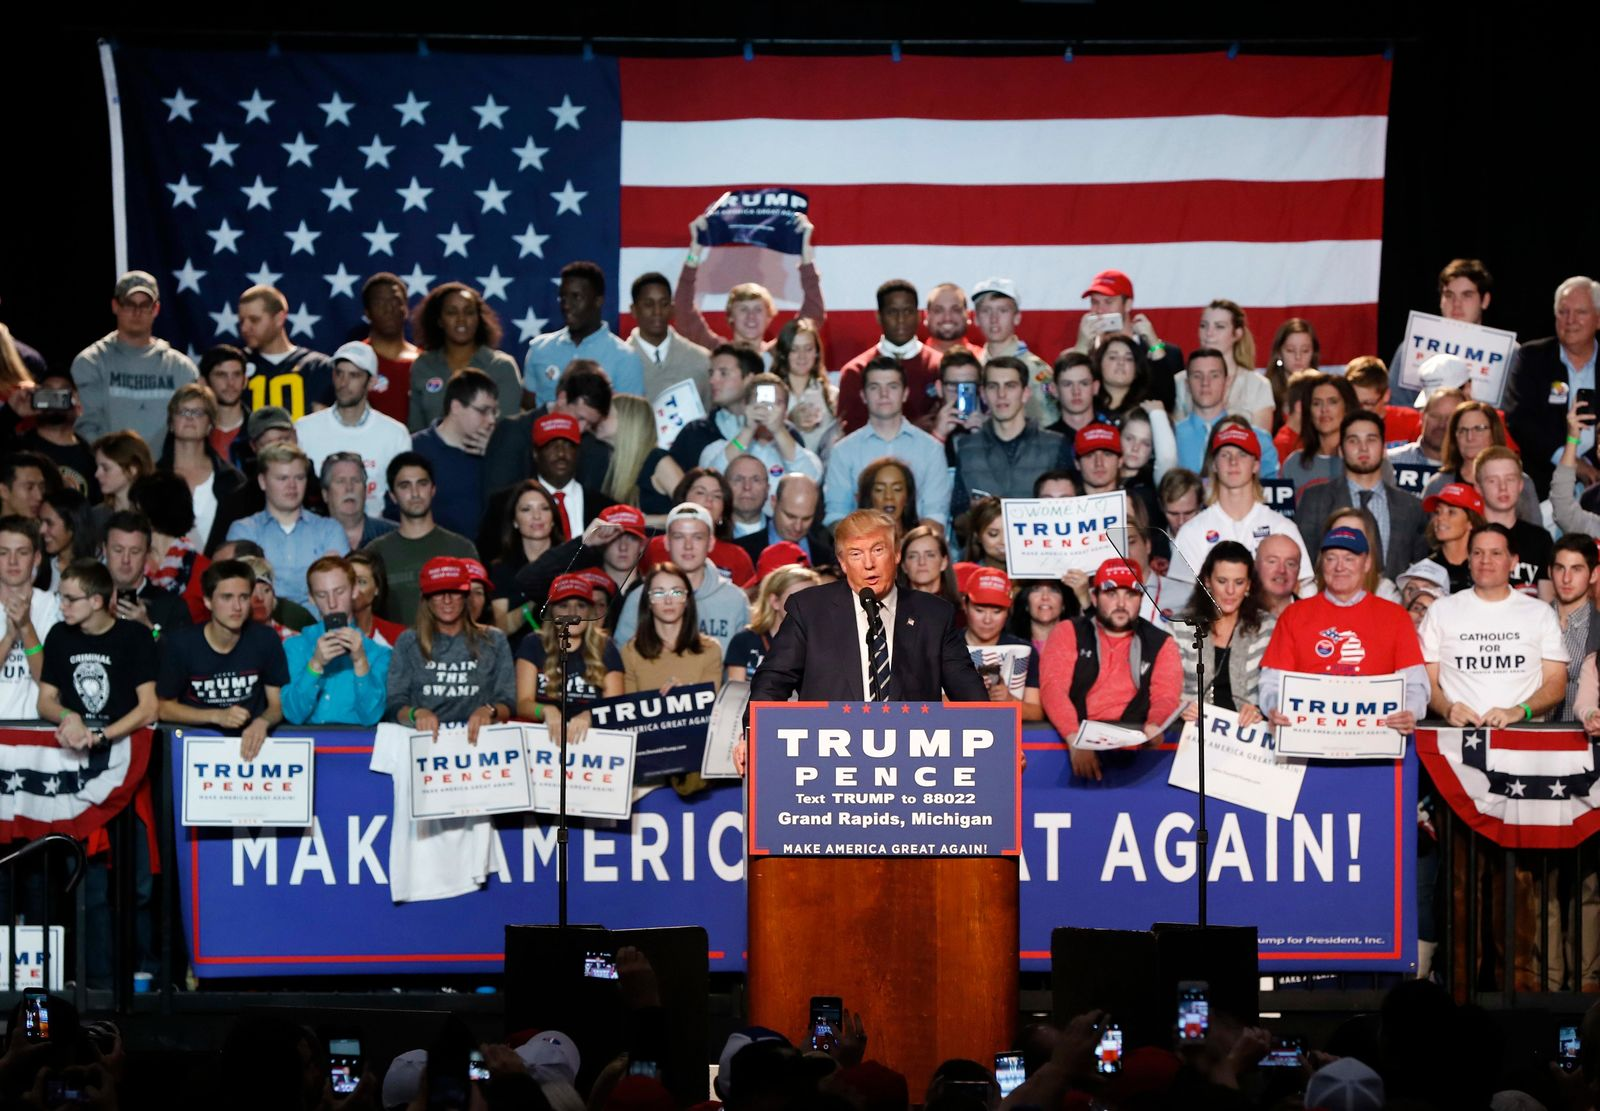 FILE - In this Nov. 8, 2016 file photo, Republican presidential candidate Donald Trump speaks to supporters during a rally, in Grand Rapids, Mich. (AP Photo/Paul Sancya, File)